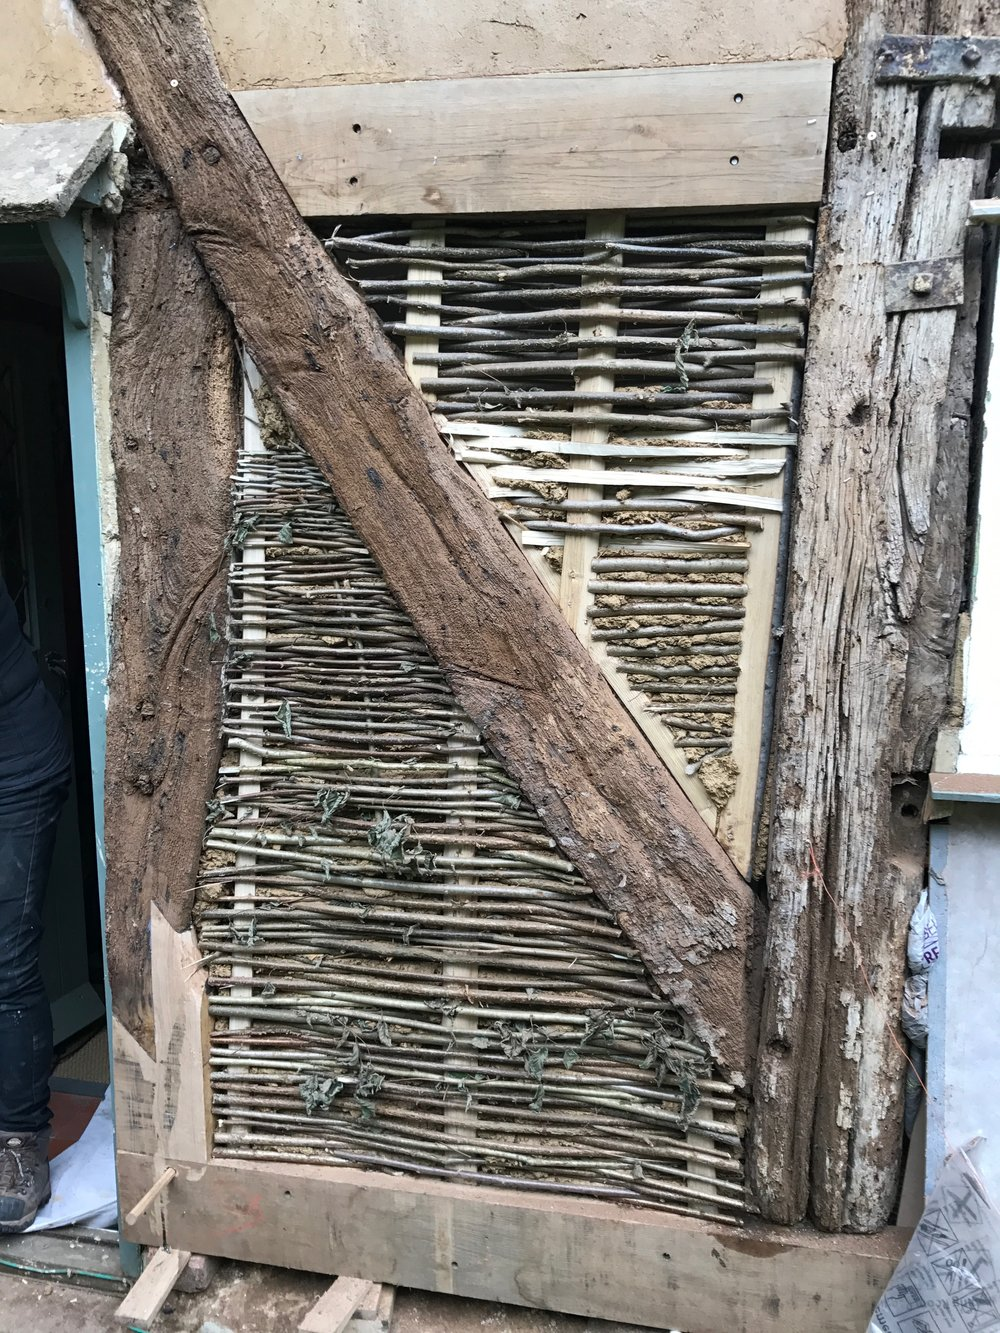 re-placement wattle ready for daub